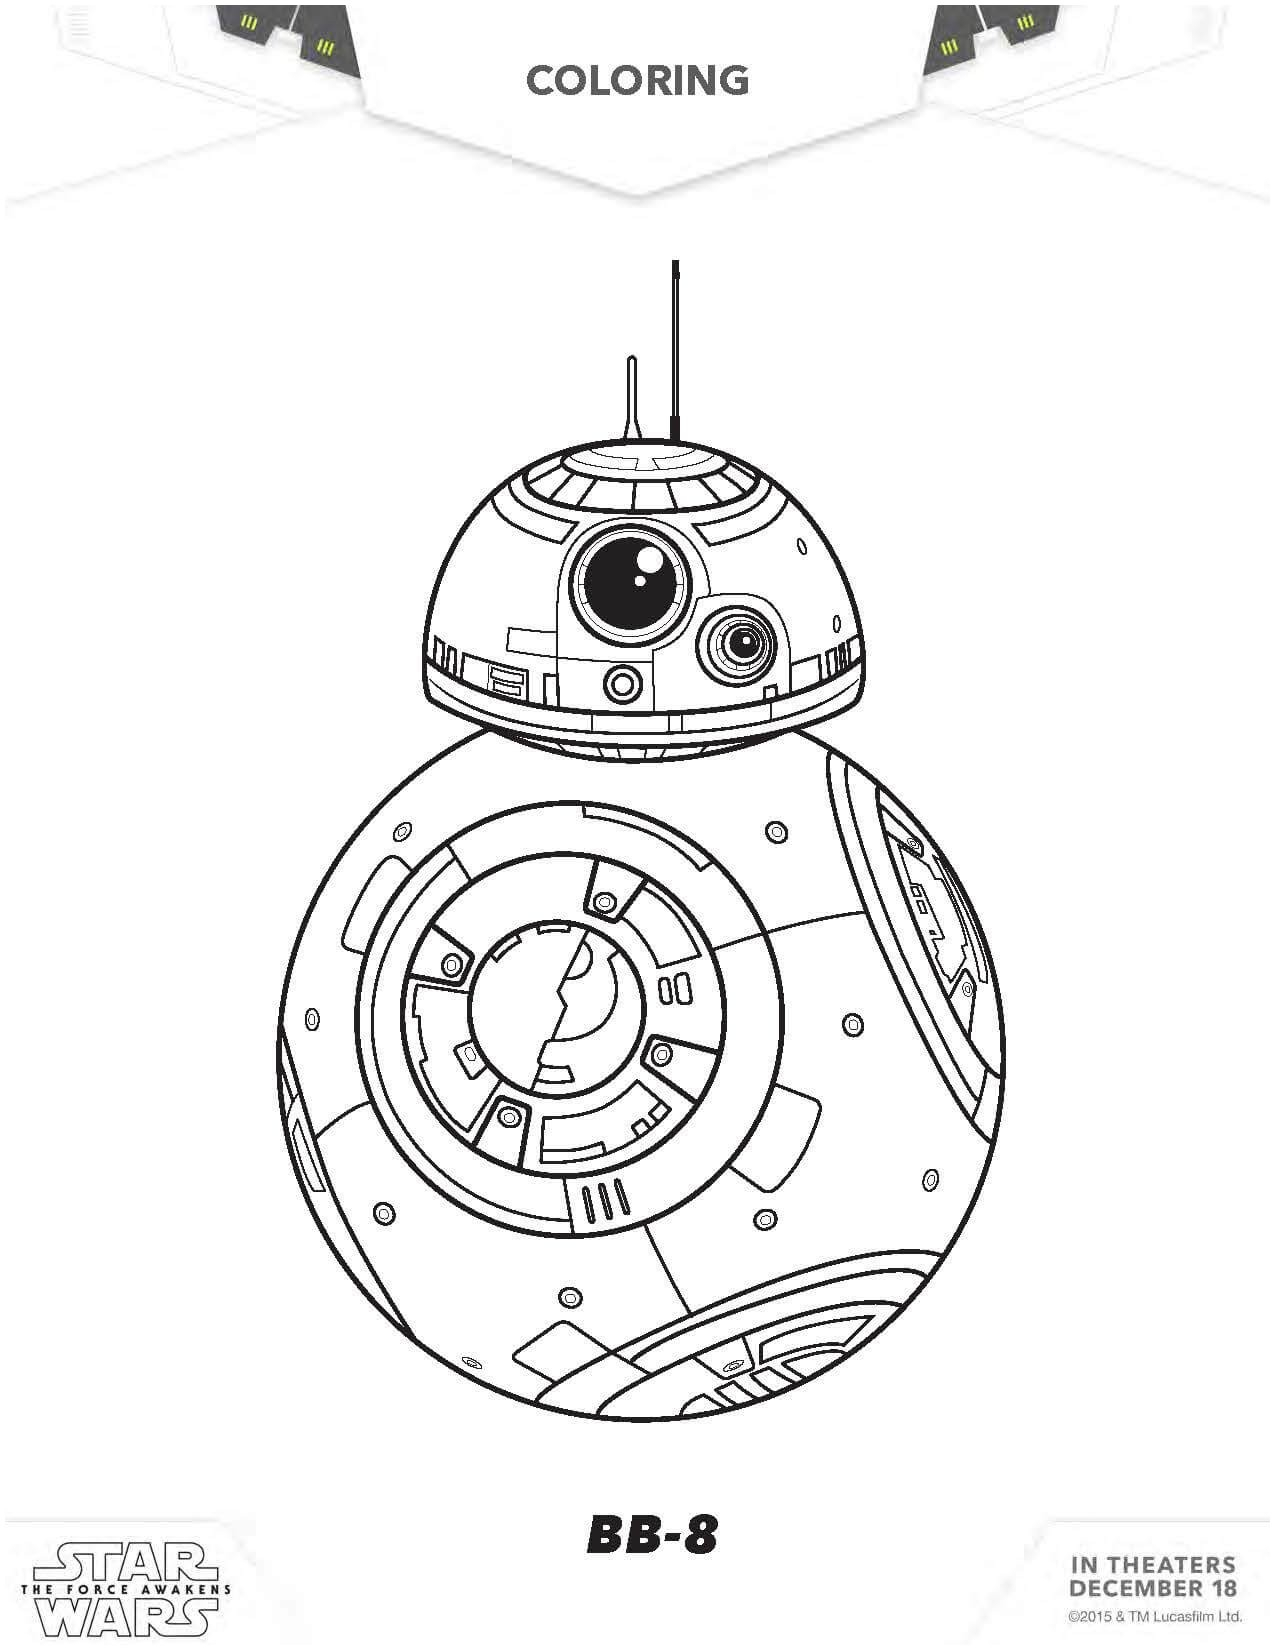 star wars coloring pages free Collection-Awesome Free Printable Star Wars the Last Jedi Coloring Pages Free Starwars Coloring Pages 16-s